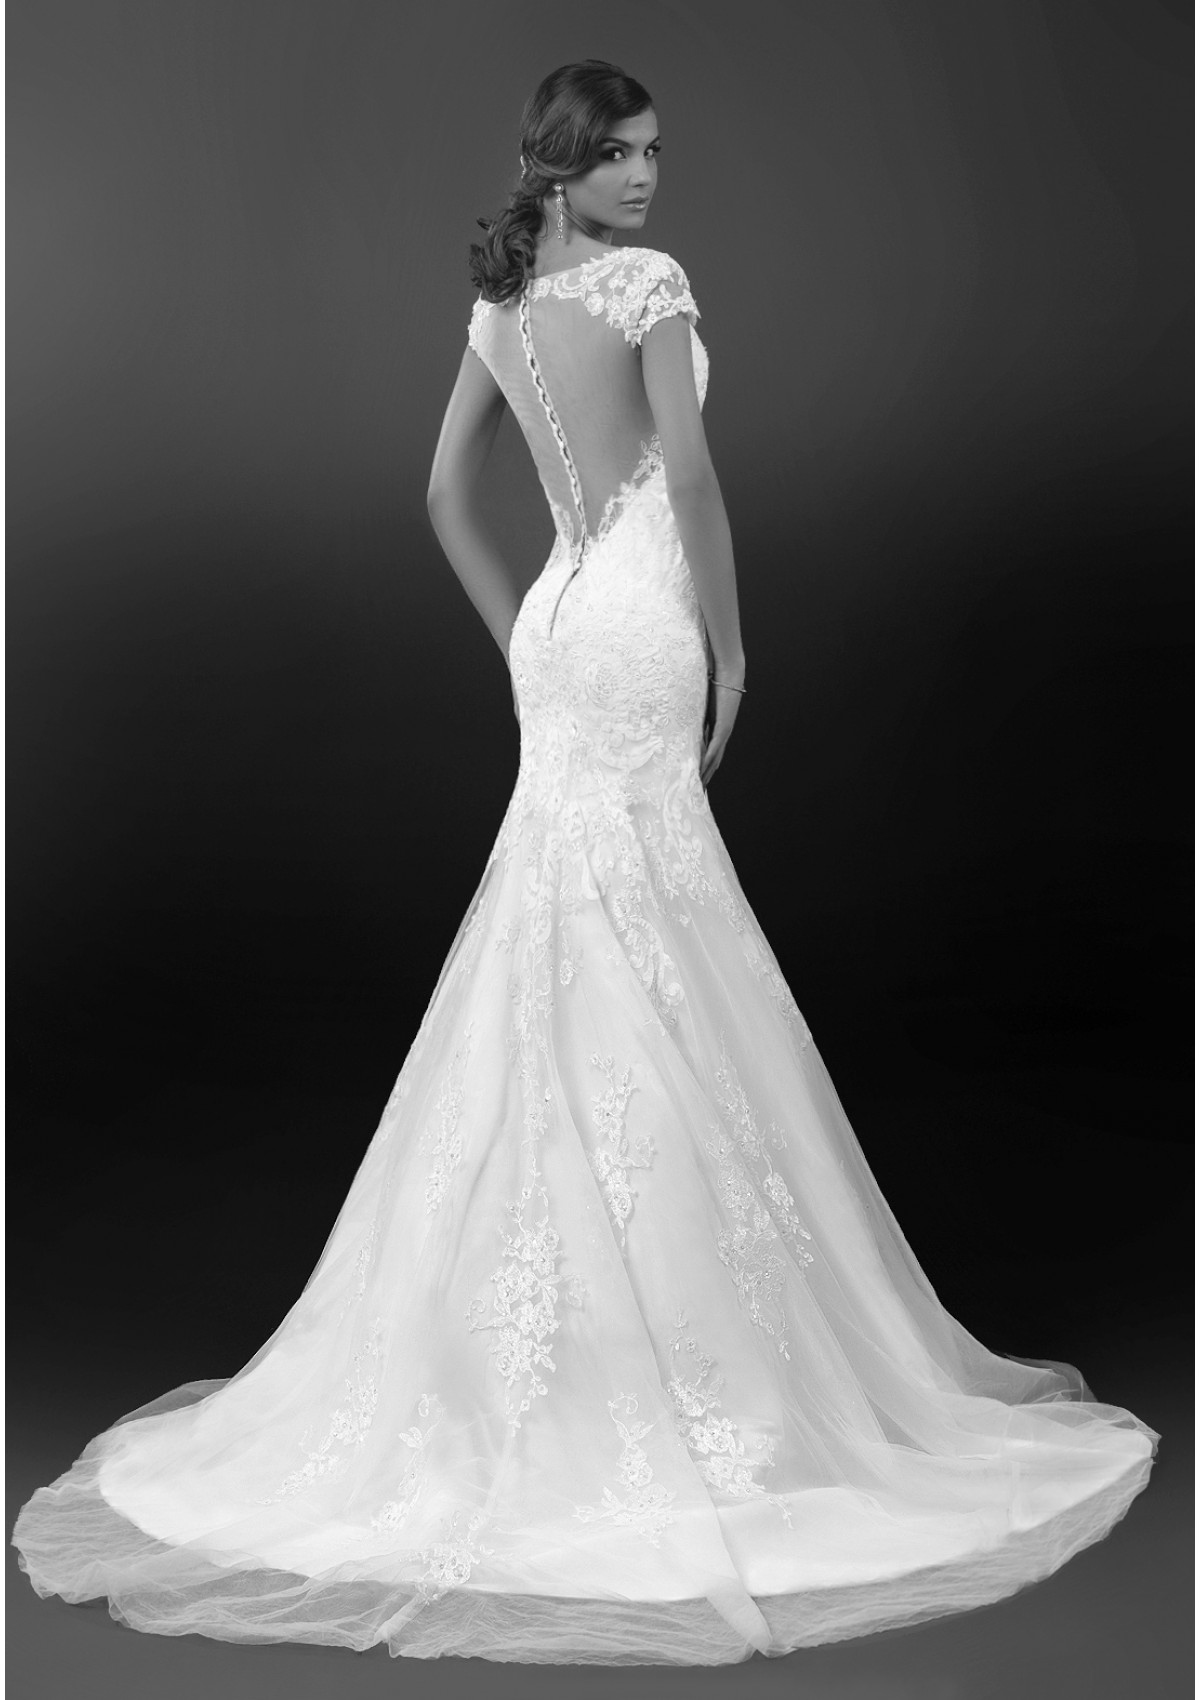 bien-savvy-wedding-dresses-2-08272014nz